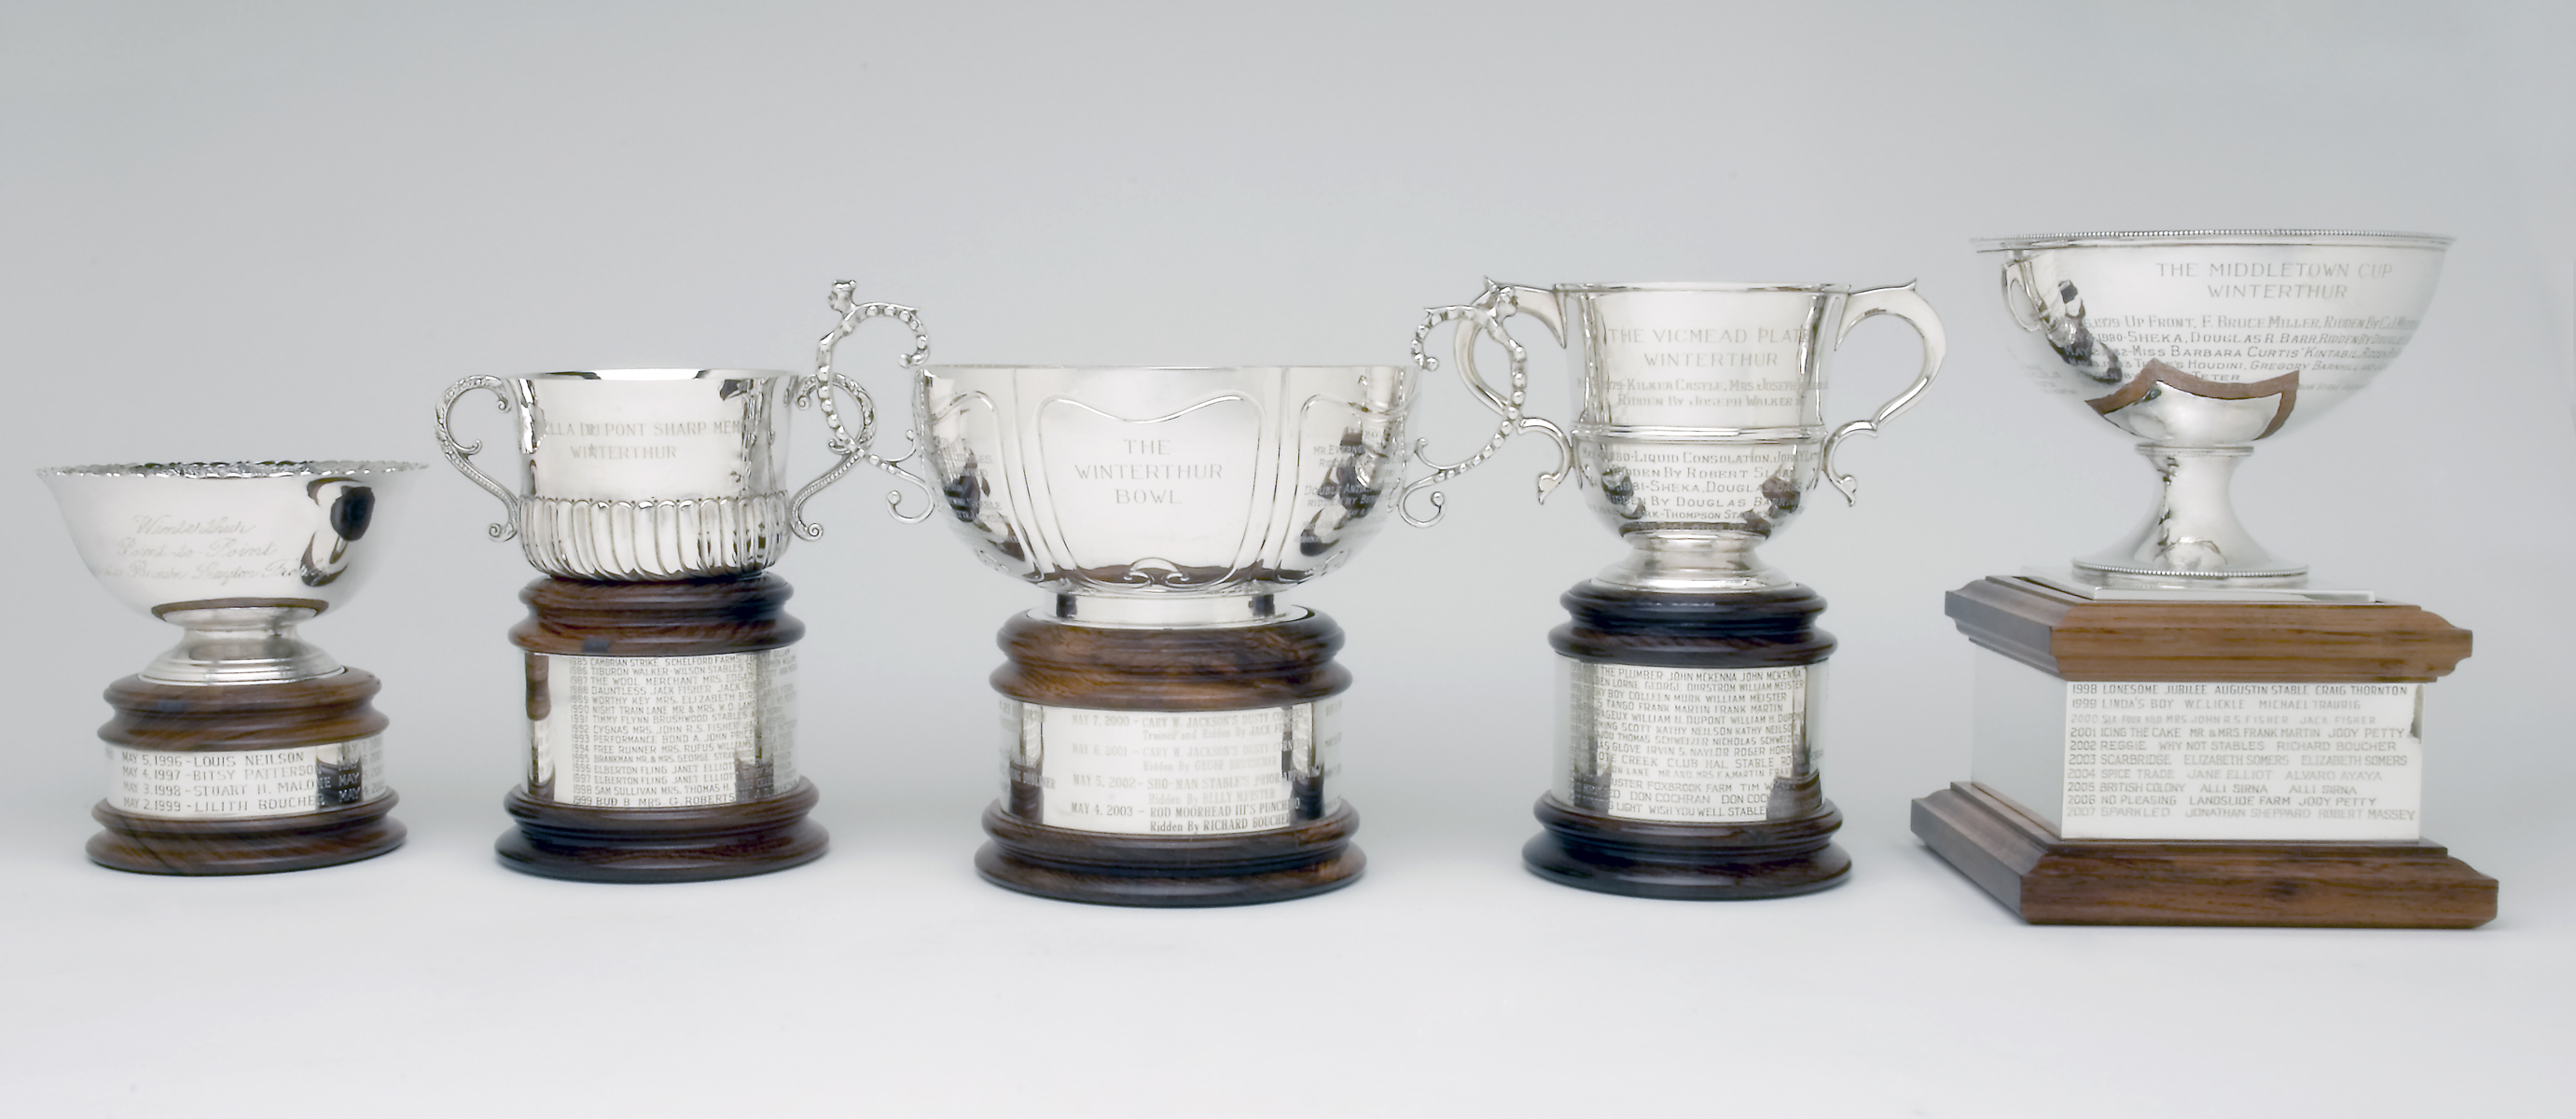 Trophies awarded to race winners at Point-to-Point